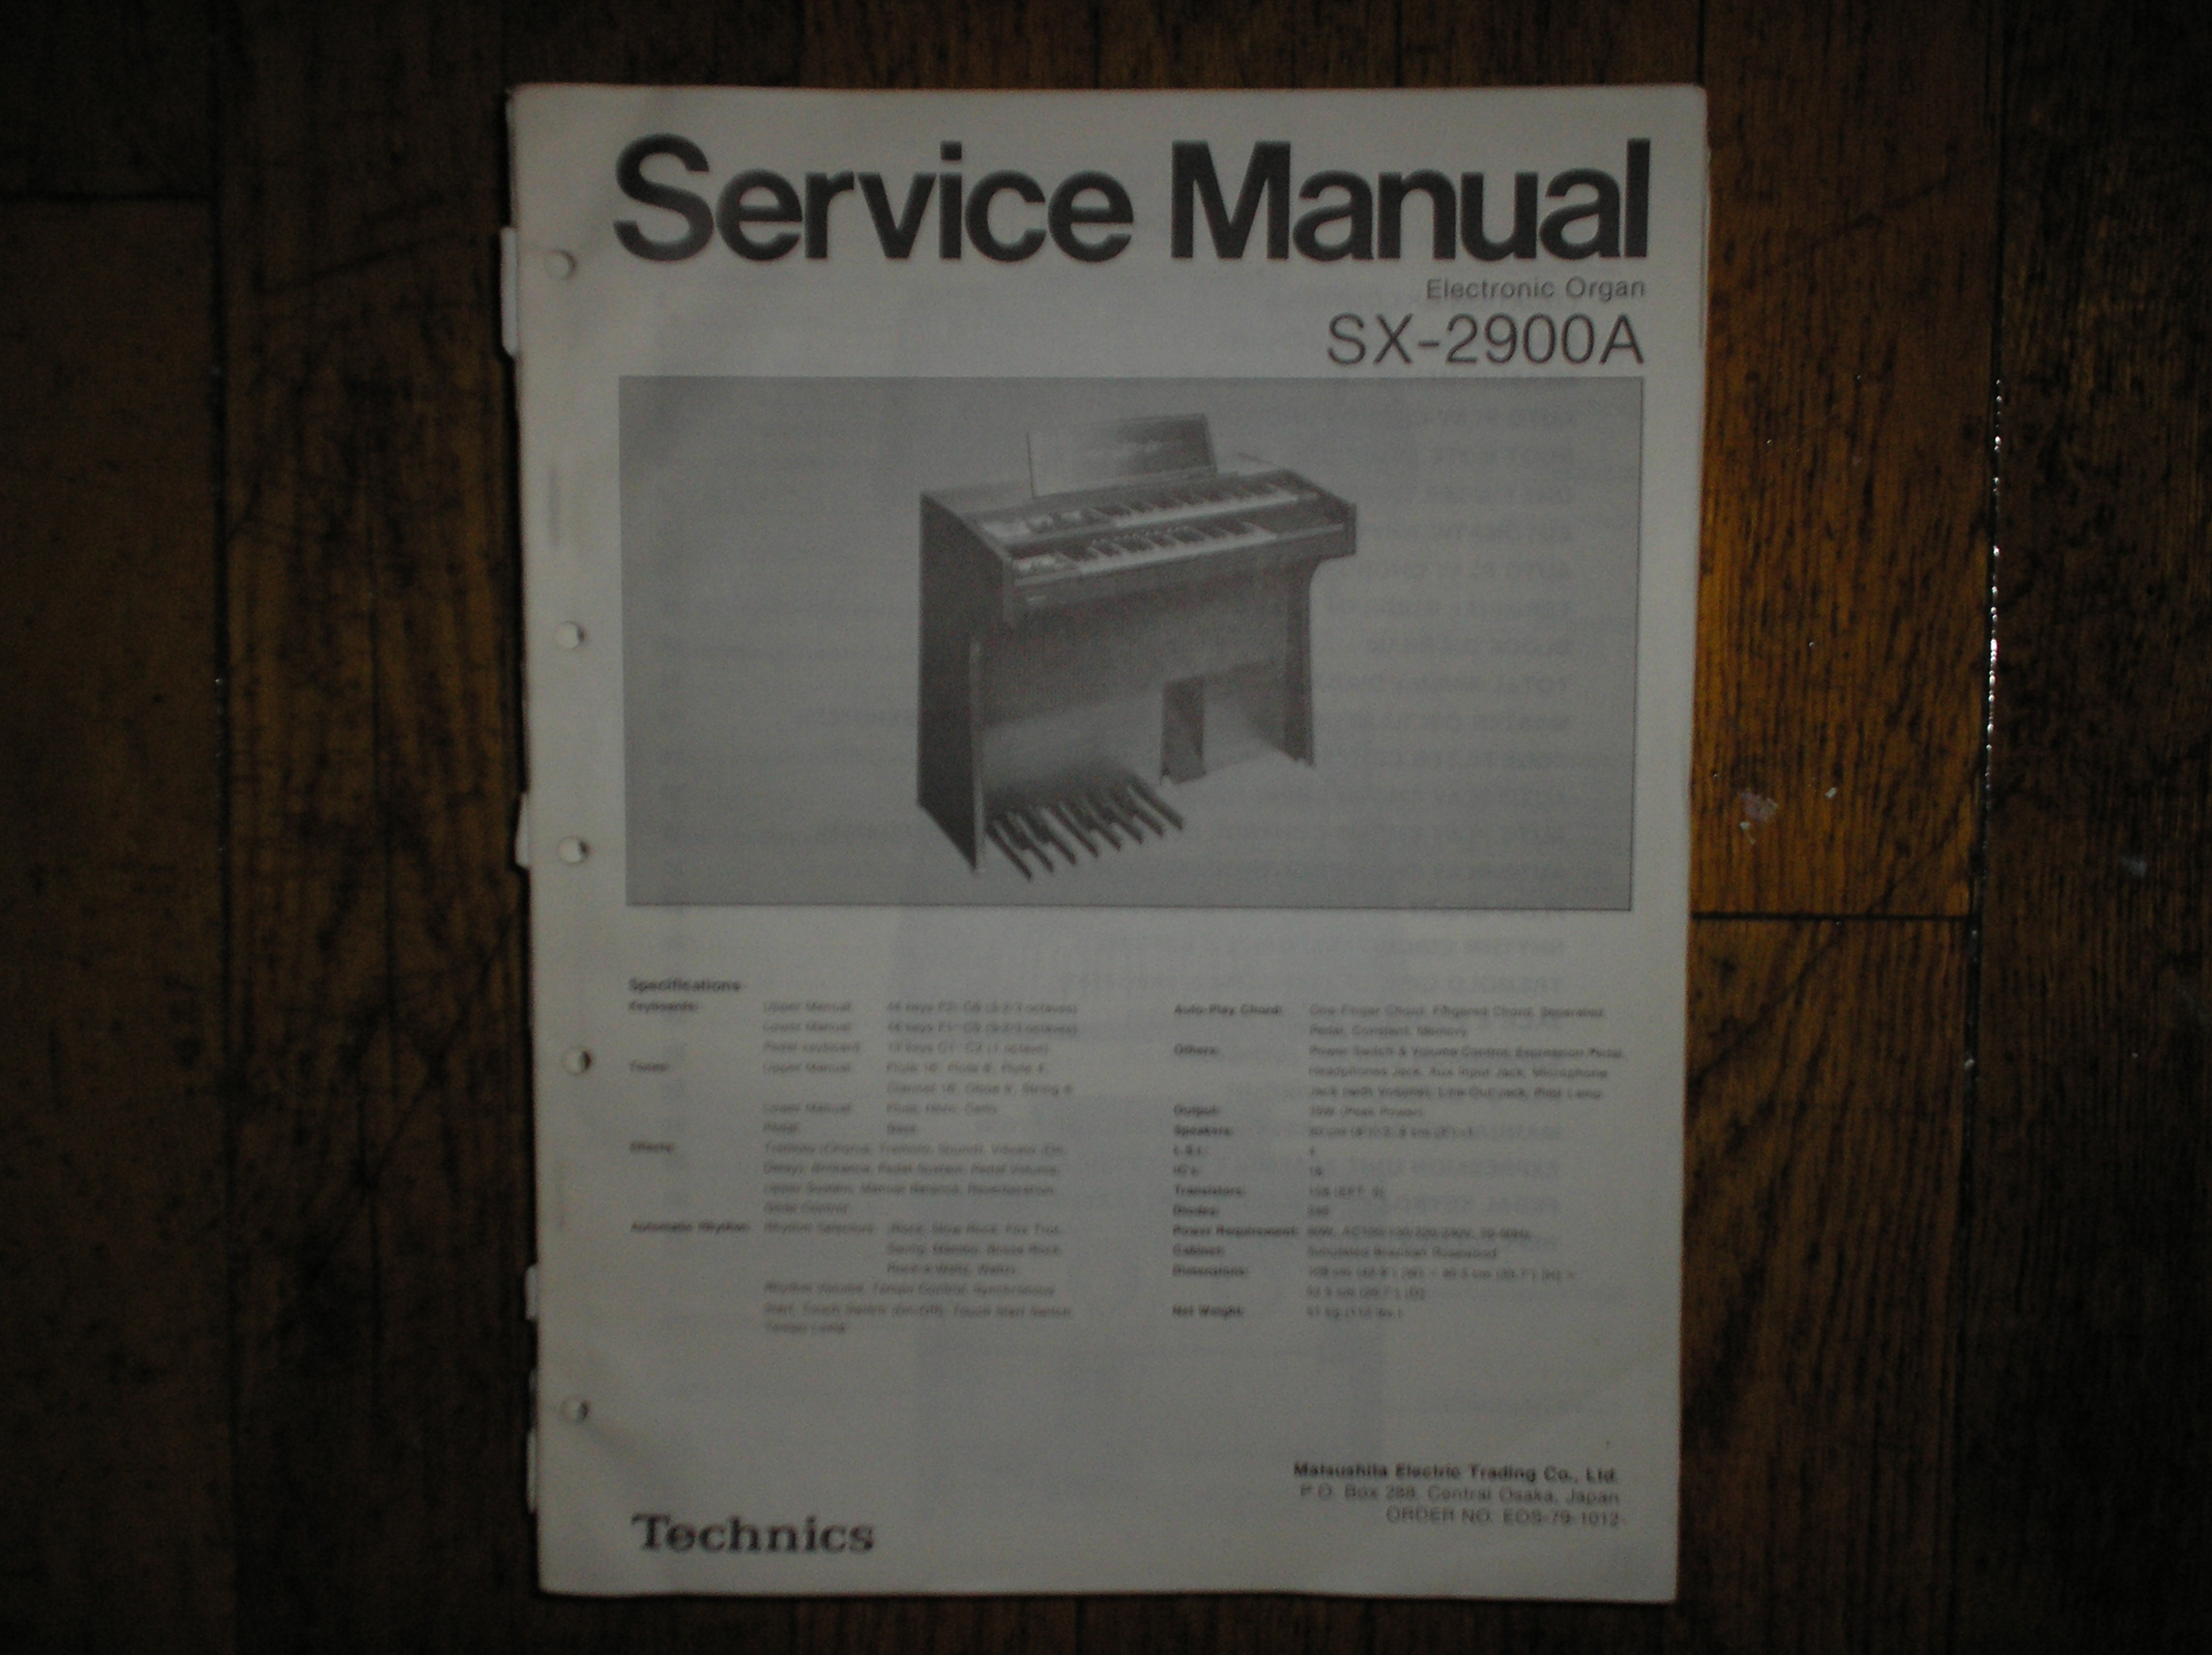 SX-2900A Electronic Organ Service Manual